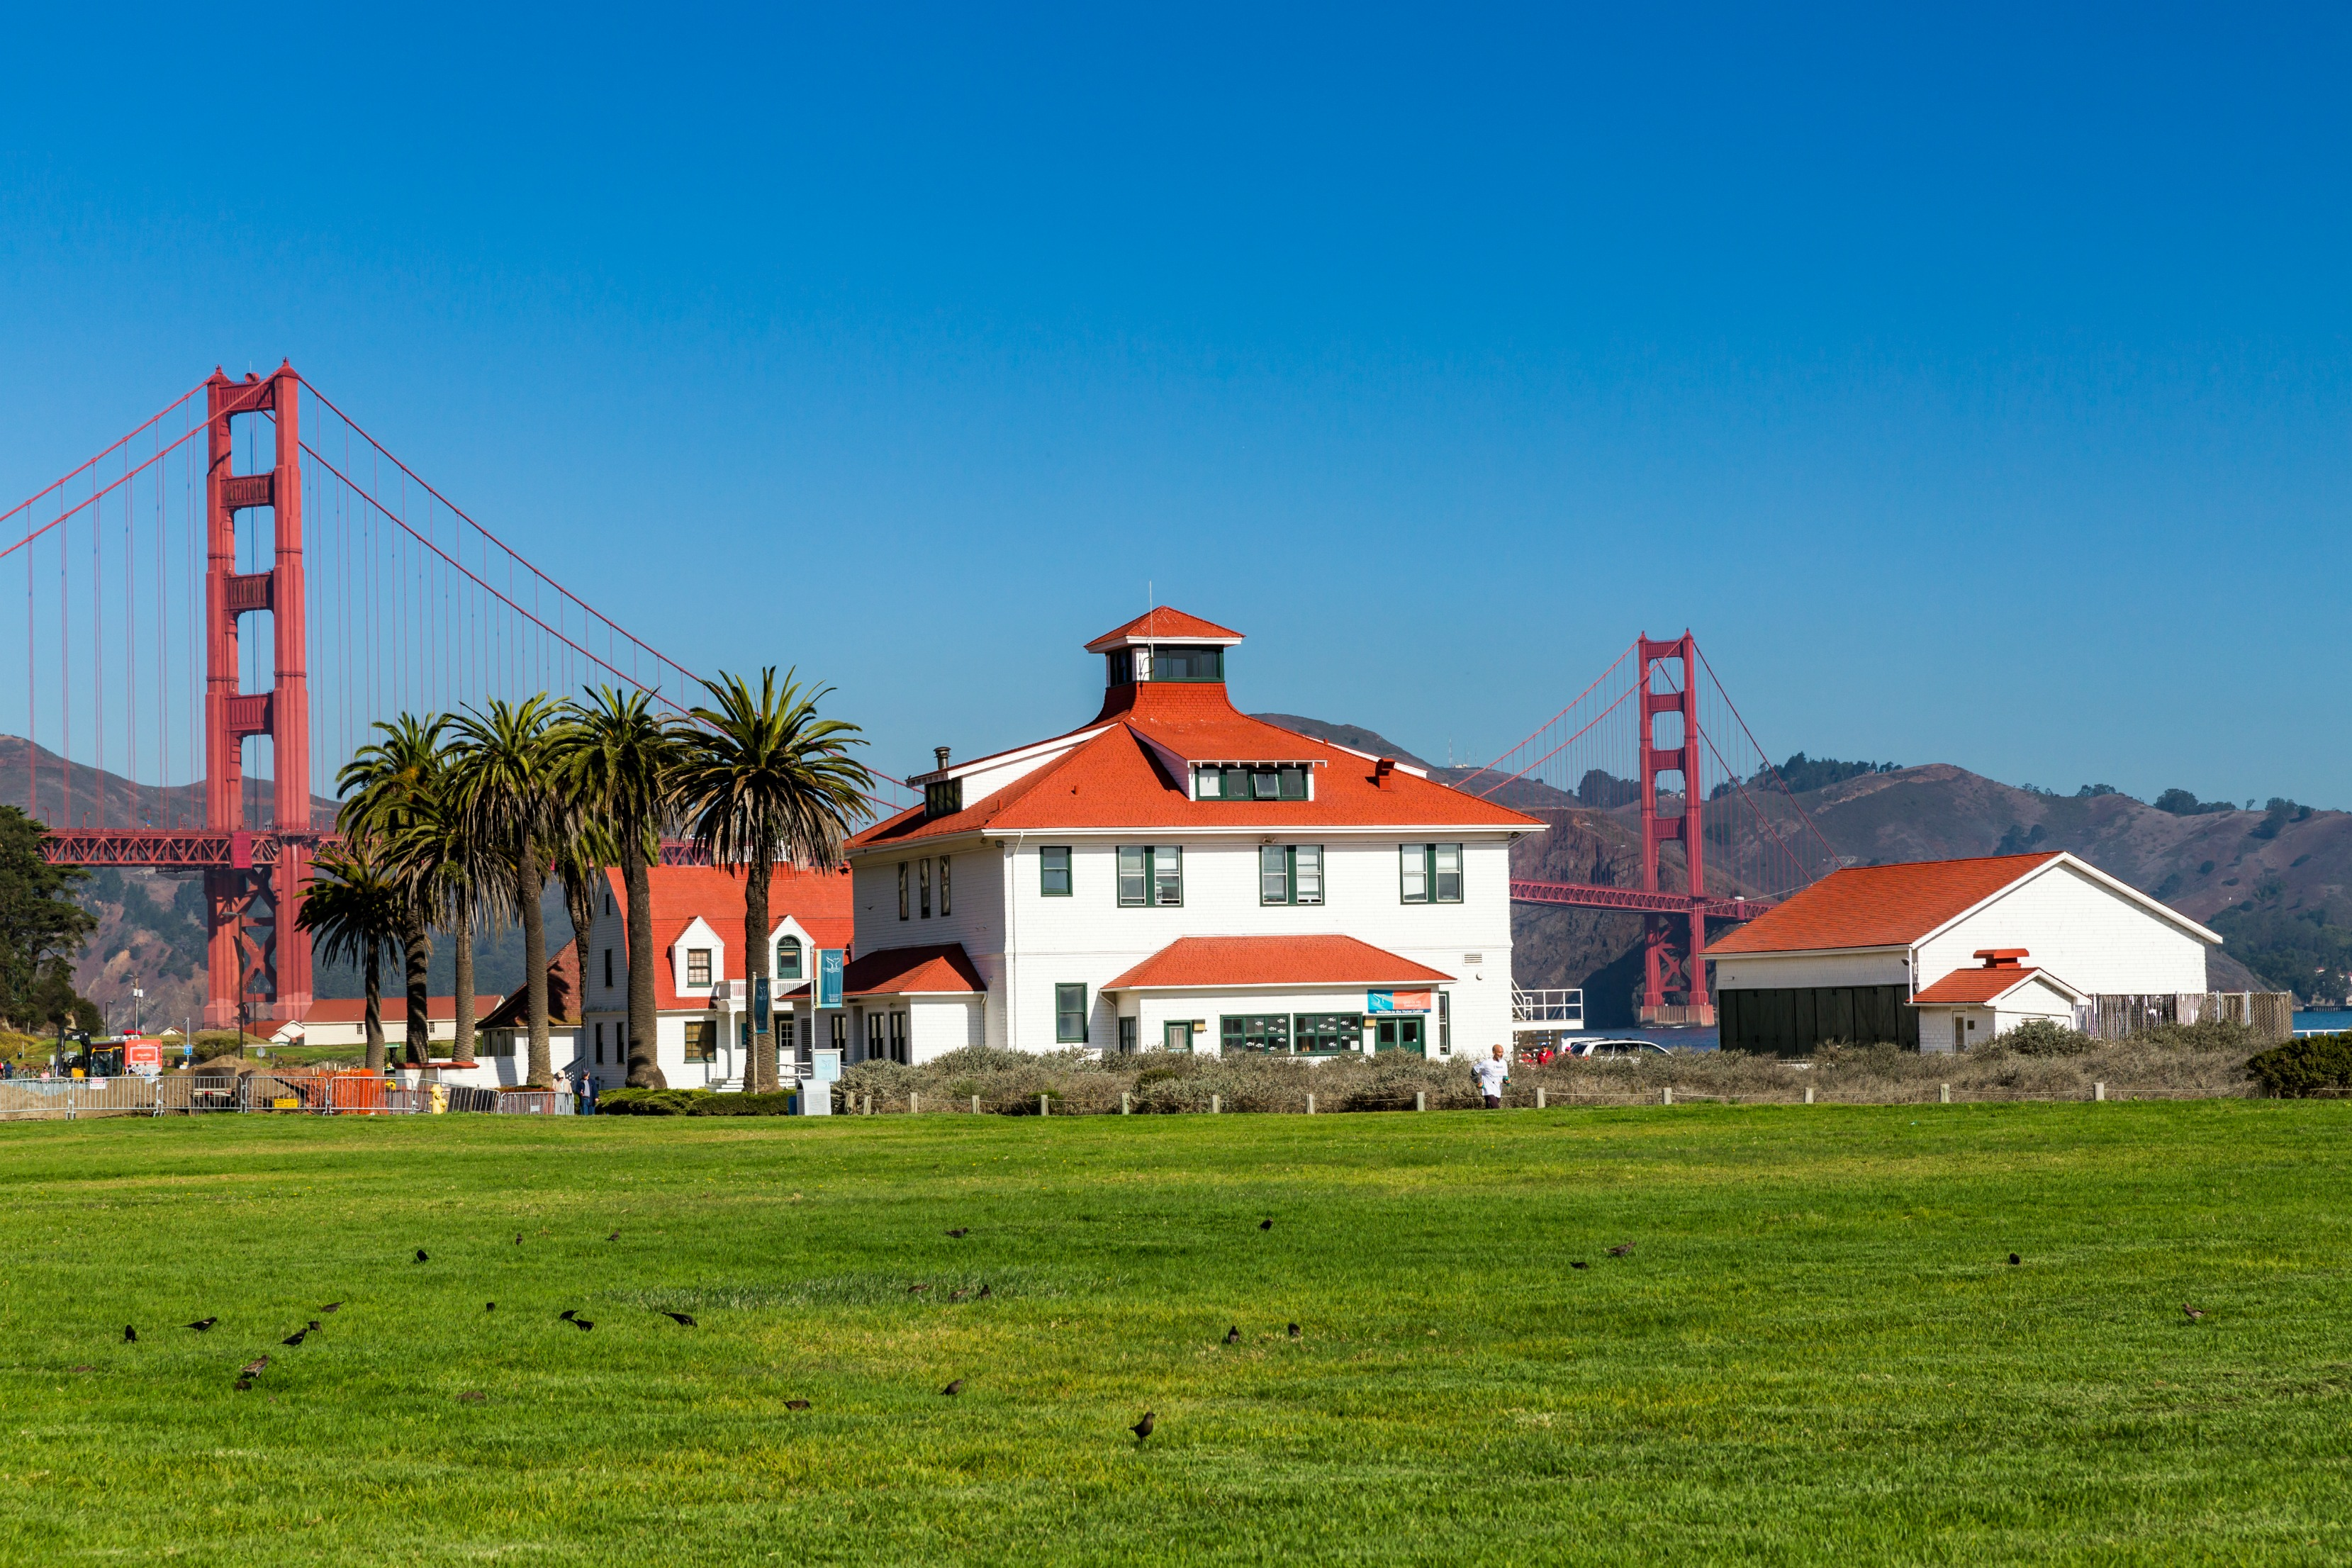 San Francisco's Urban National Parks - The Presidio